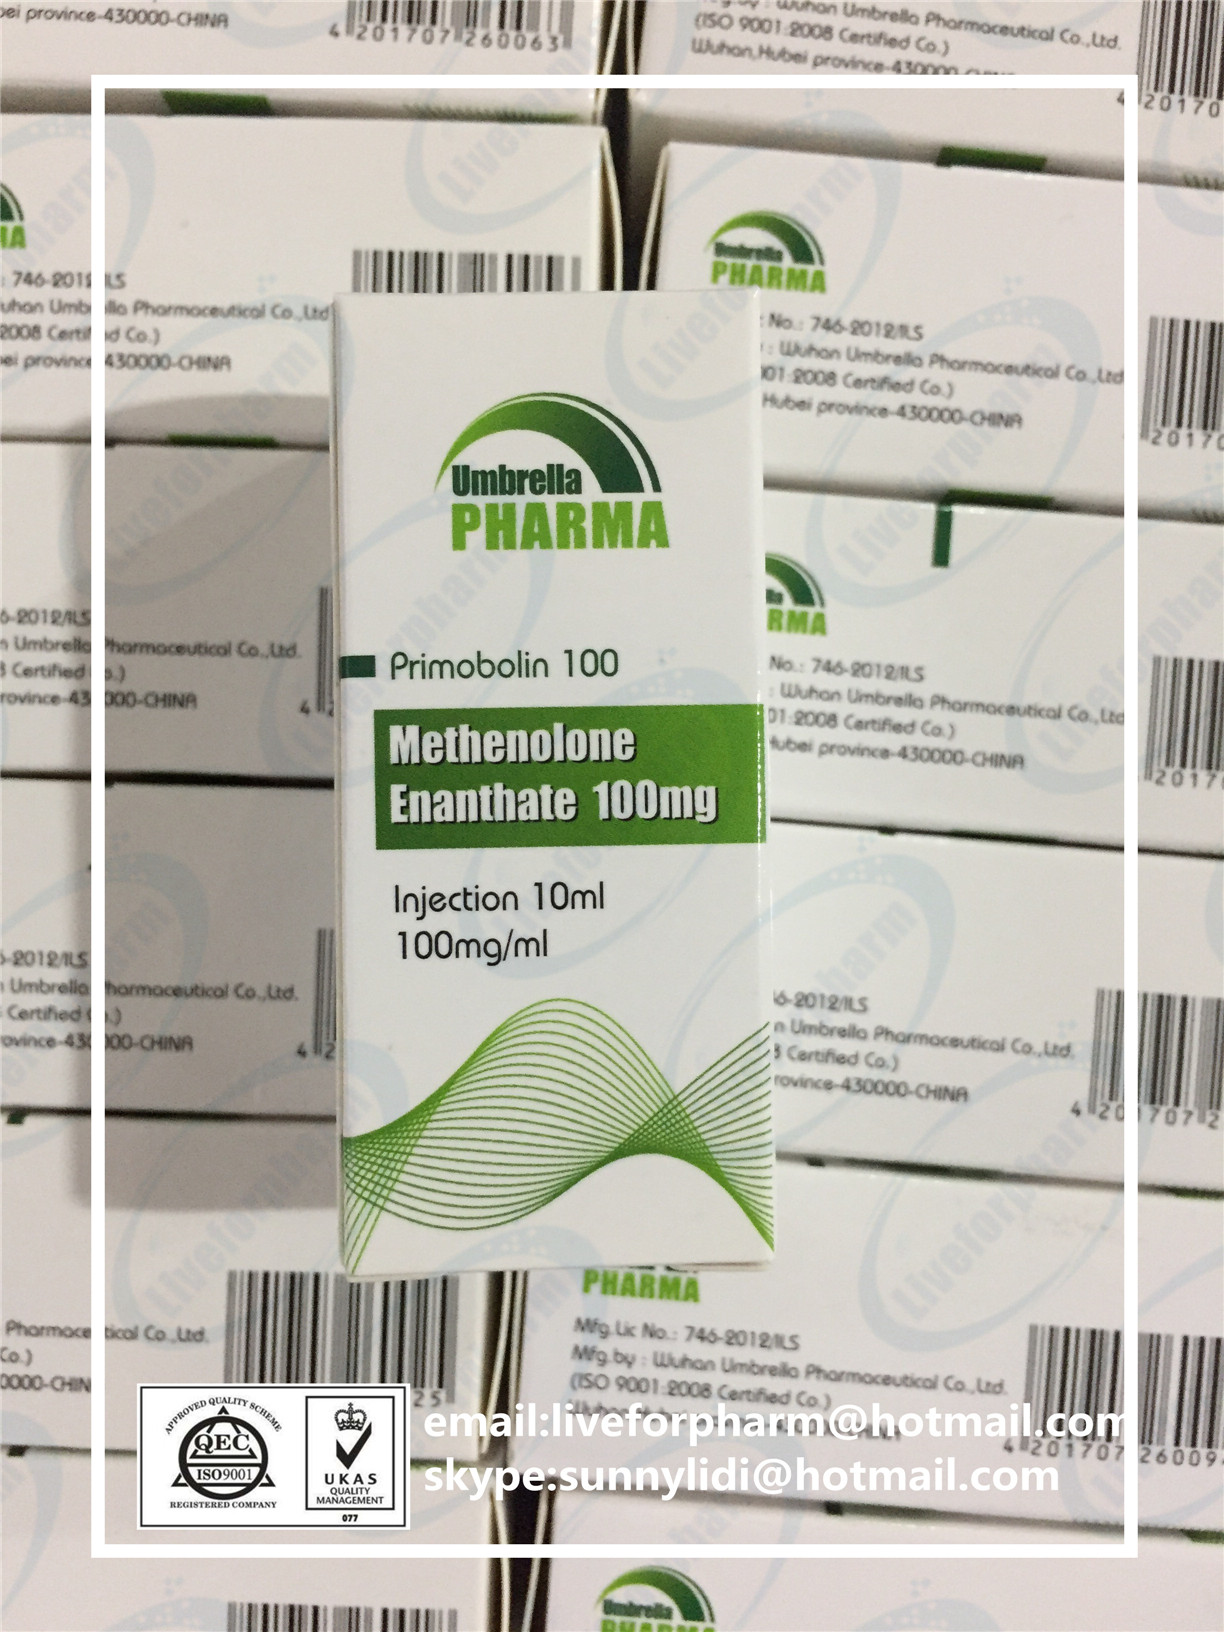 10ml OIL Injection Primobolan Methenolone Enanthate 100mg/ml 98.8% purity above